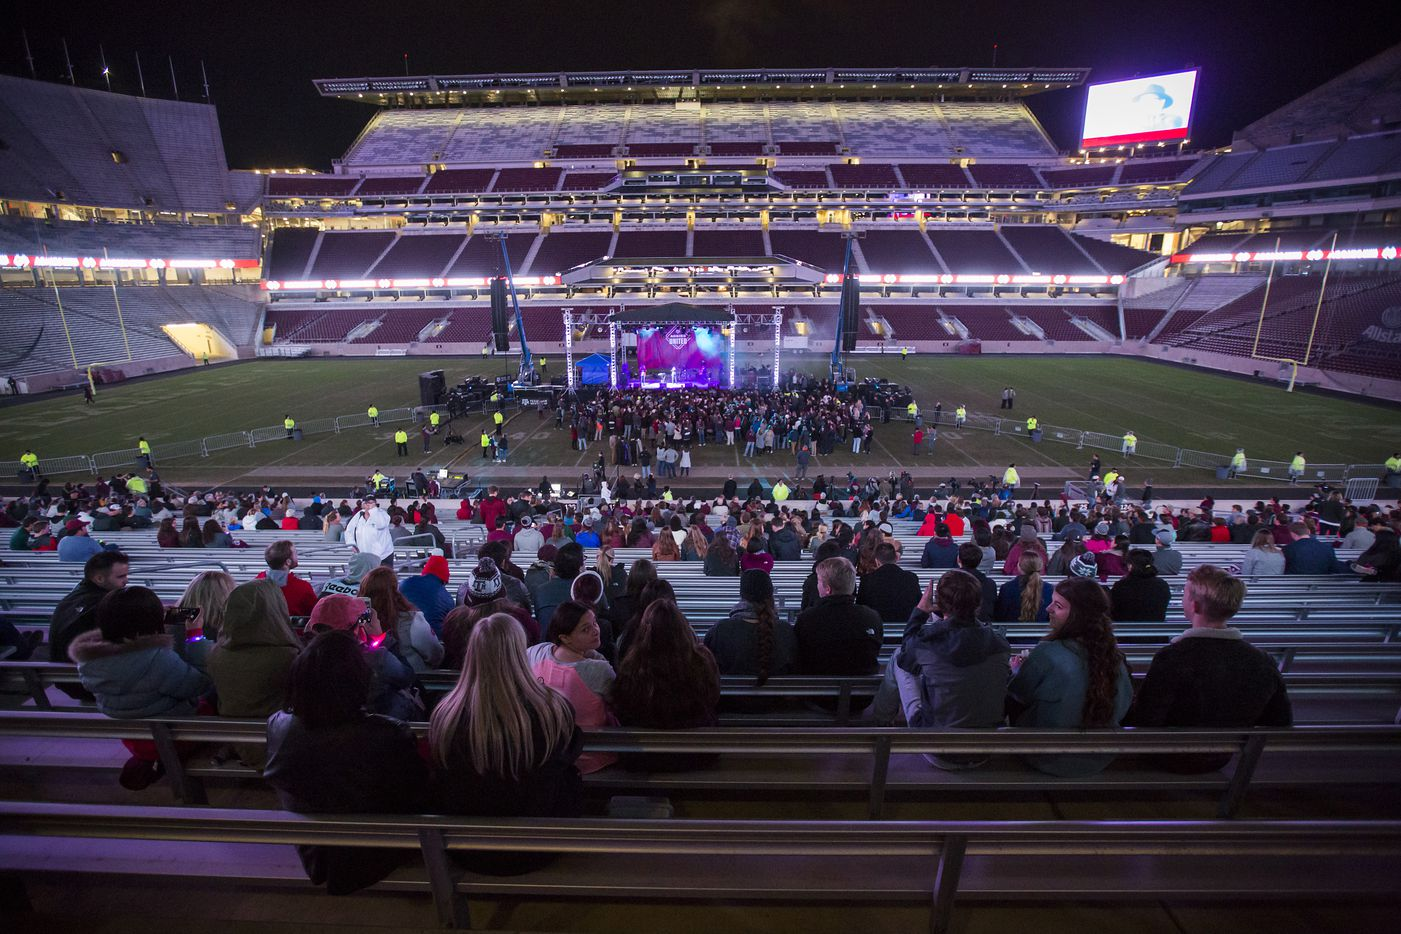 People gather to watch the Bill Clark Trio perform during the Aggies United event at Kyle Field.